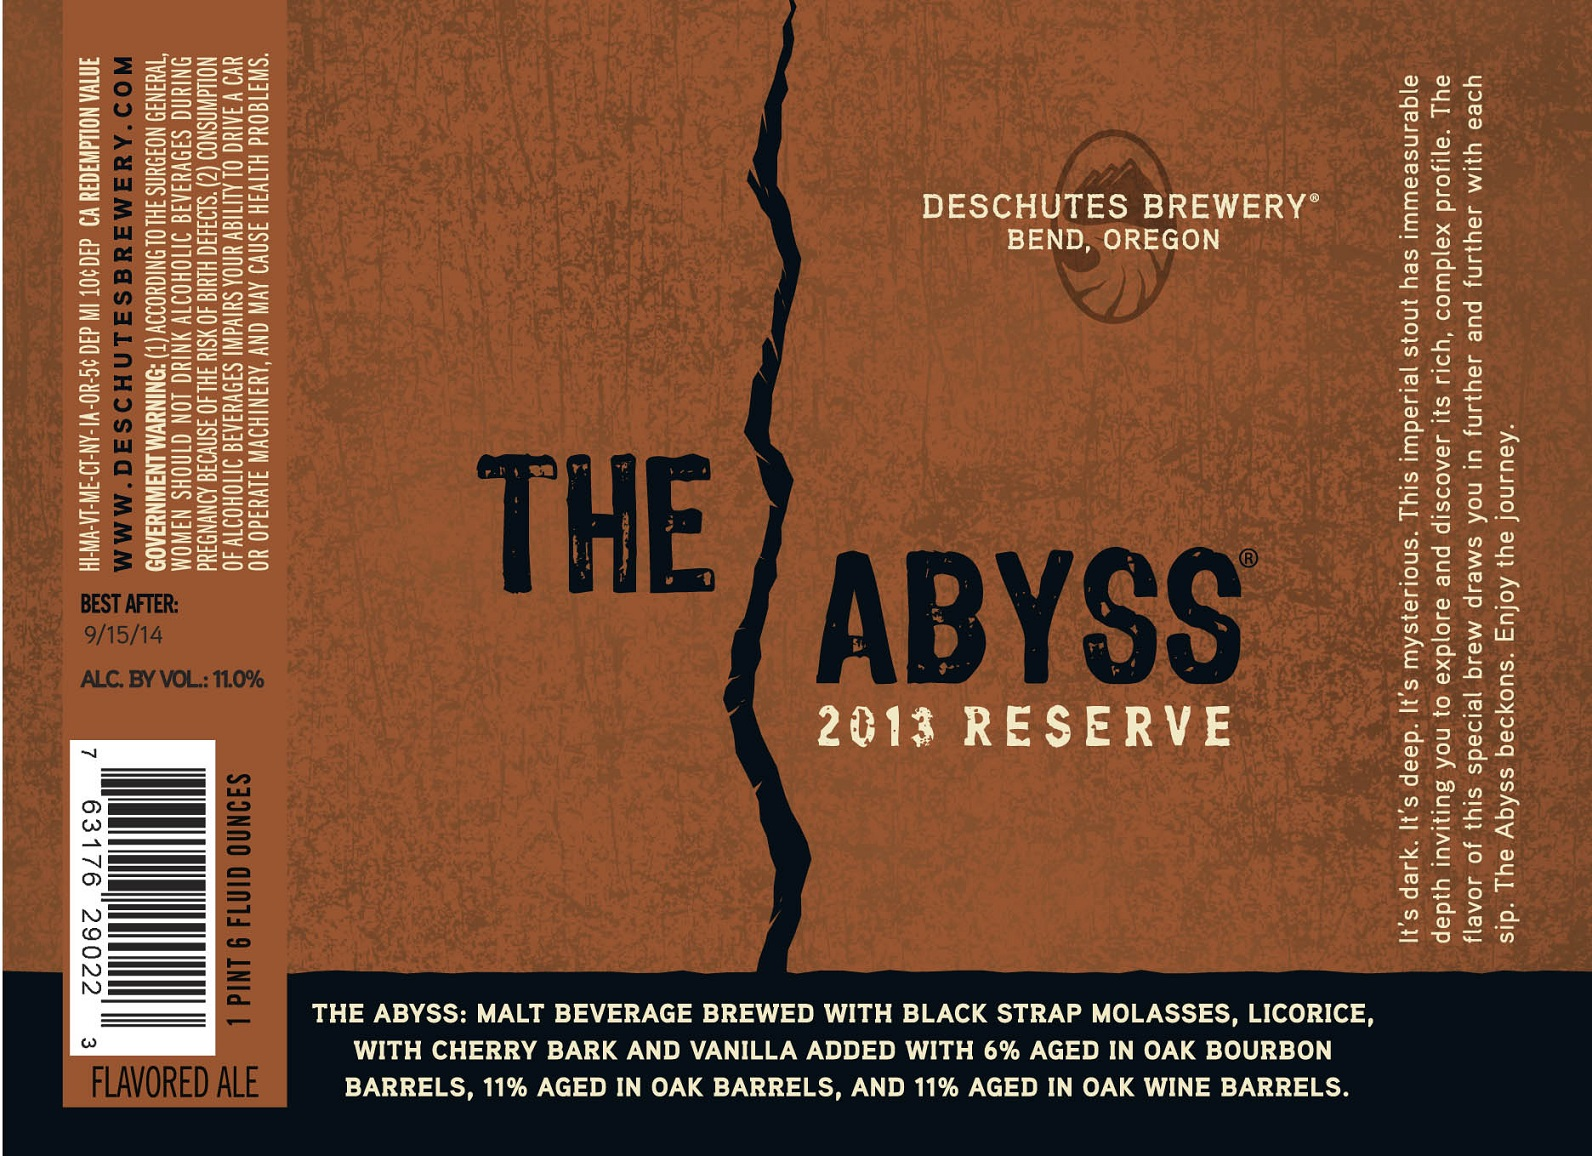 The Abyss - Deschutes Brewery